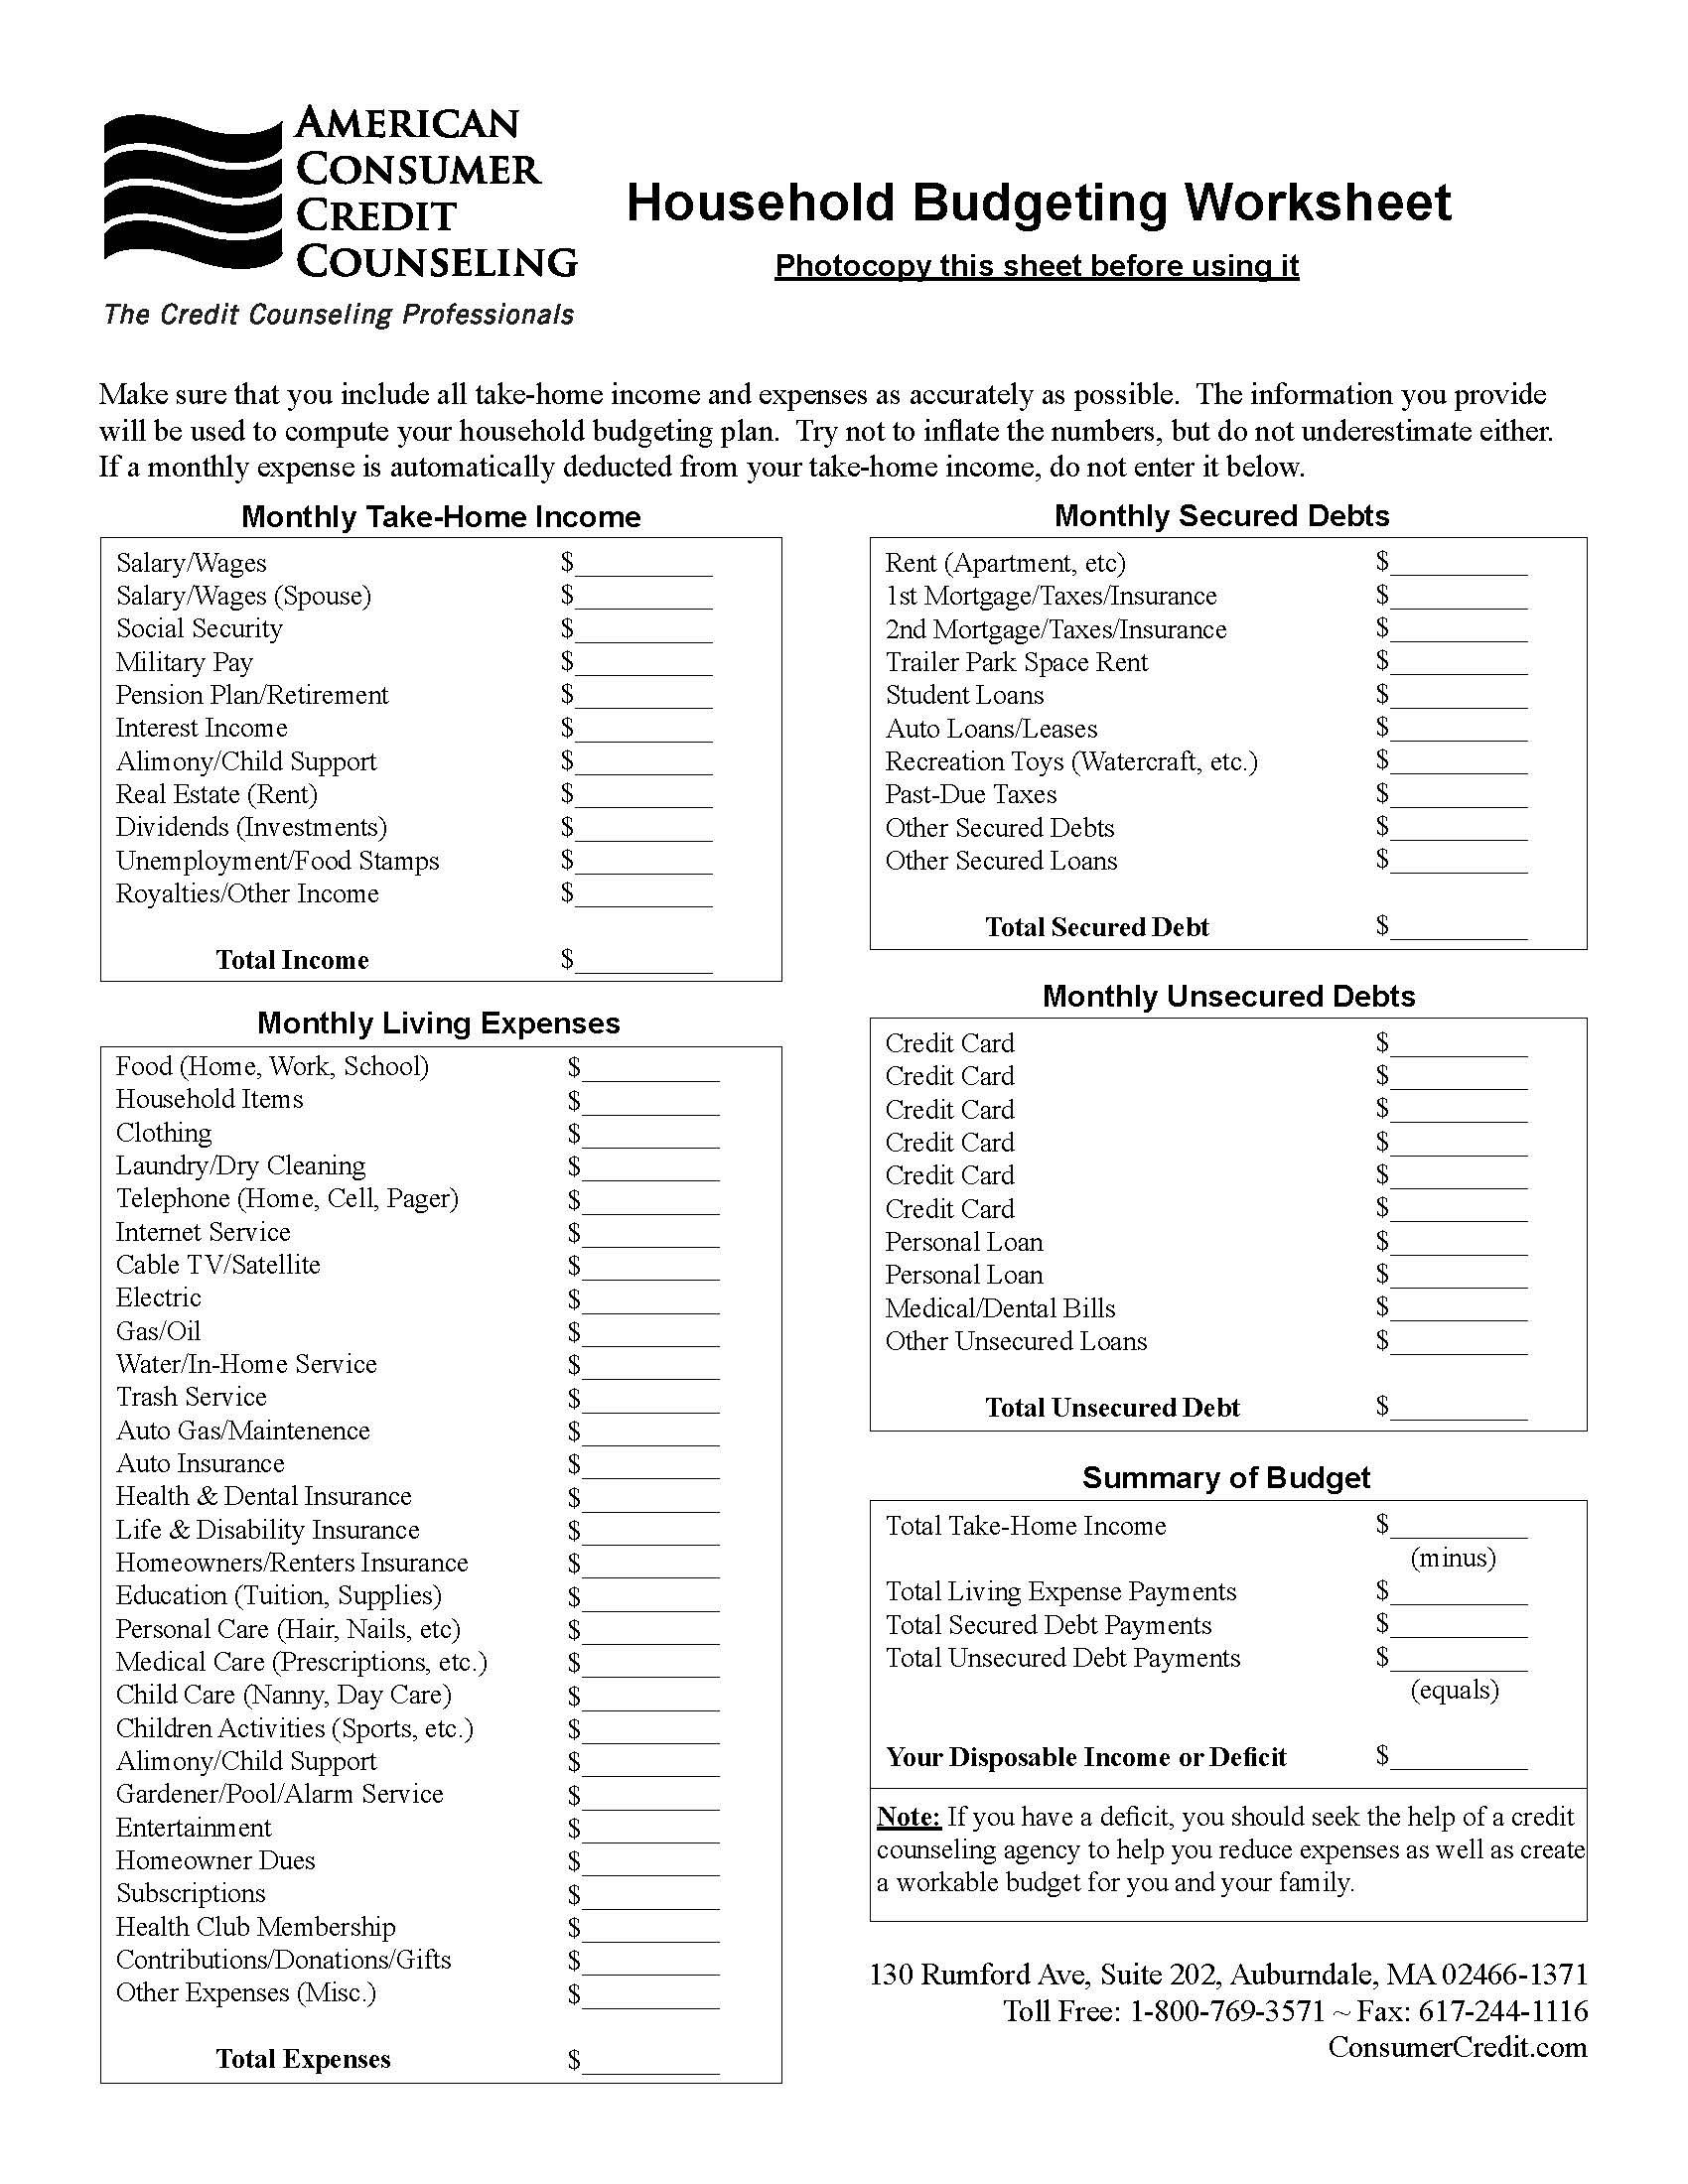 Use This Household Budgeting Worksheet To Help You Get An Accurate